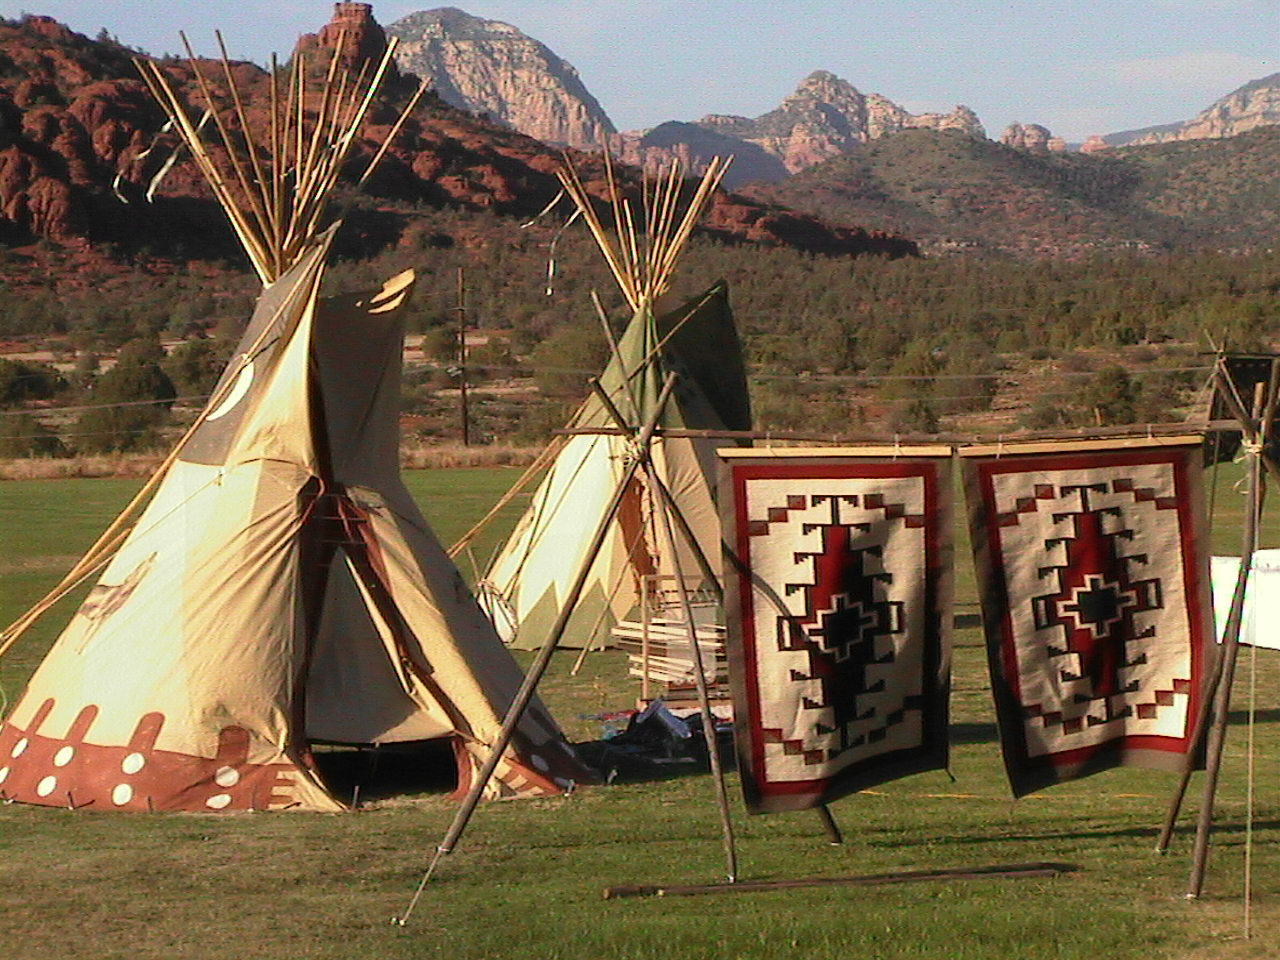 Native American Village, View From Verde Valley School, Image Provided By Show Stoppers